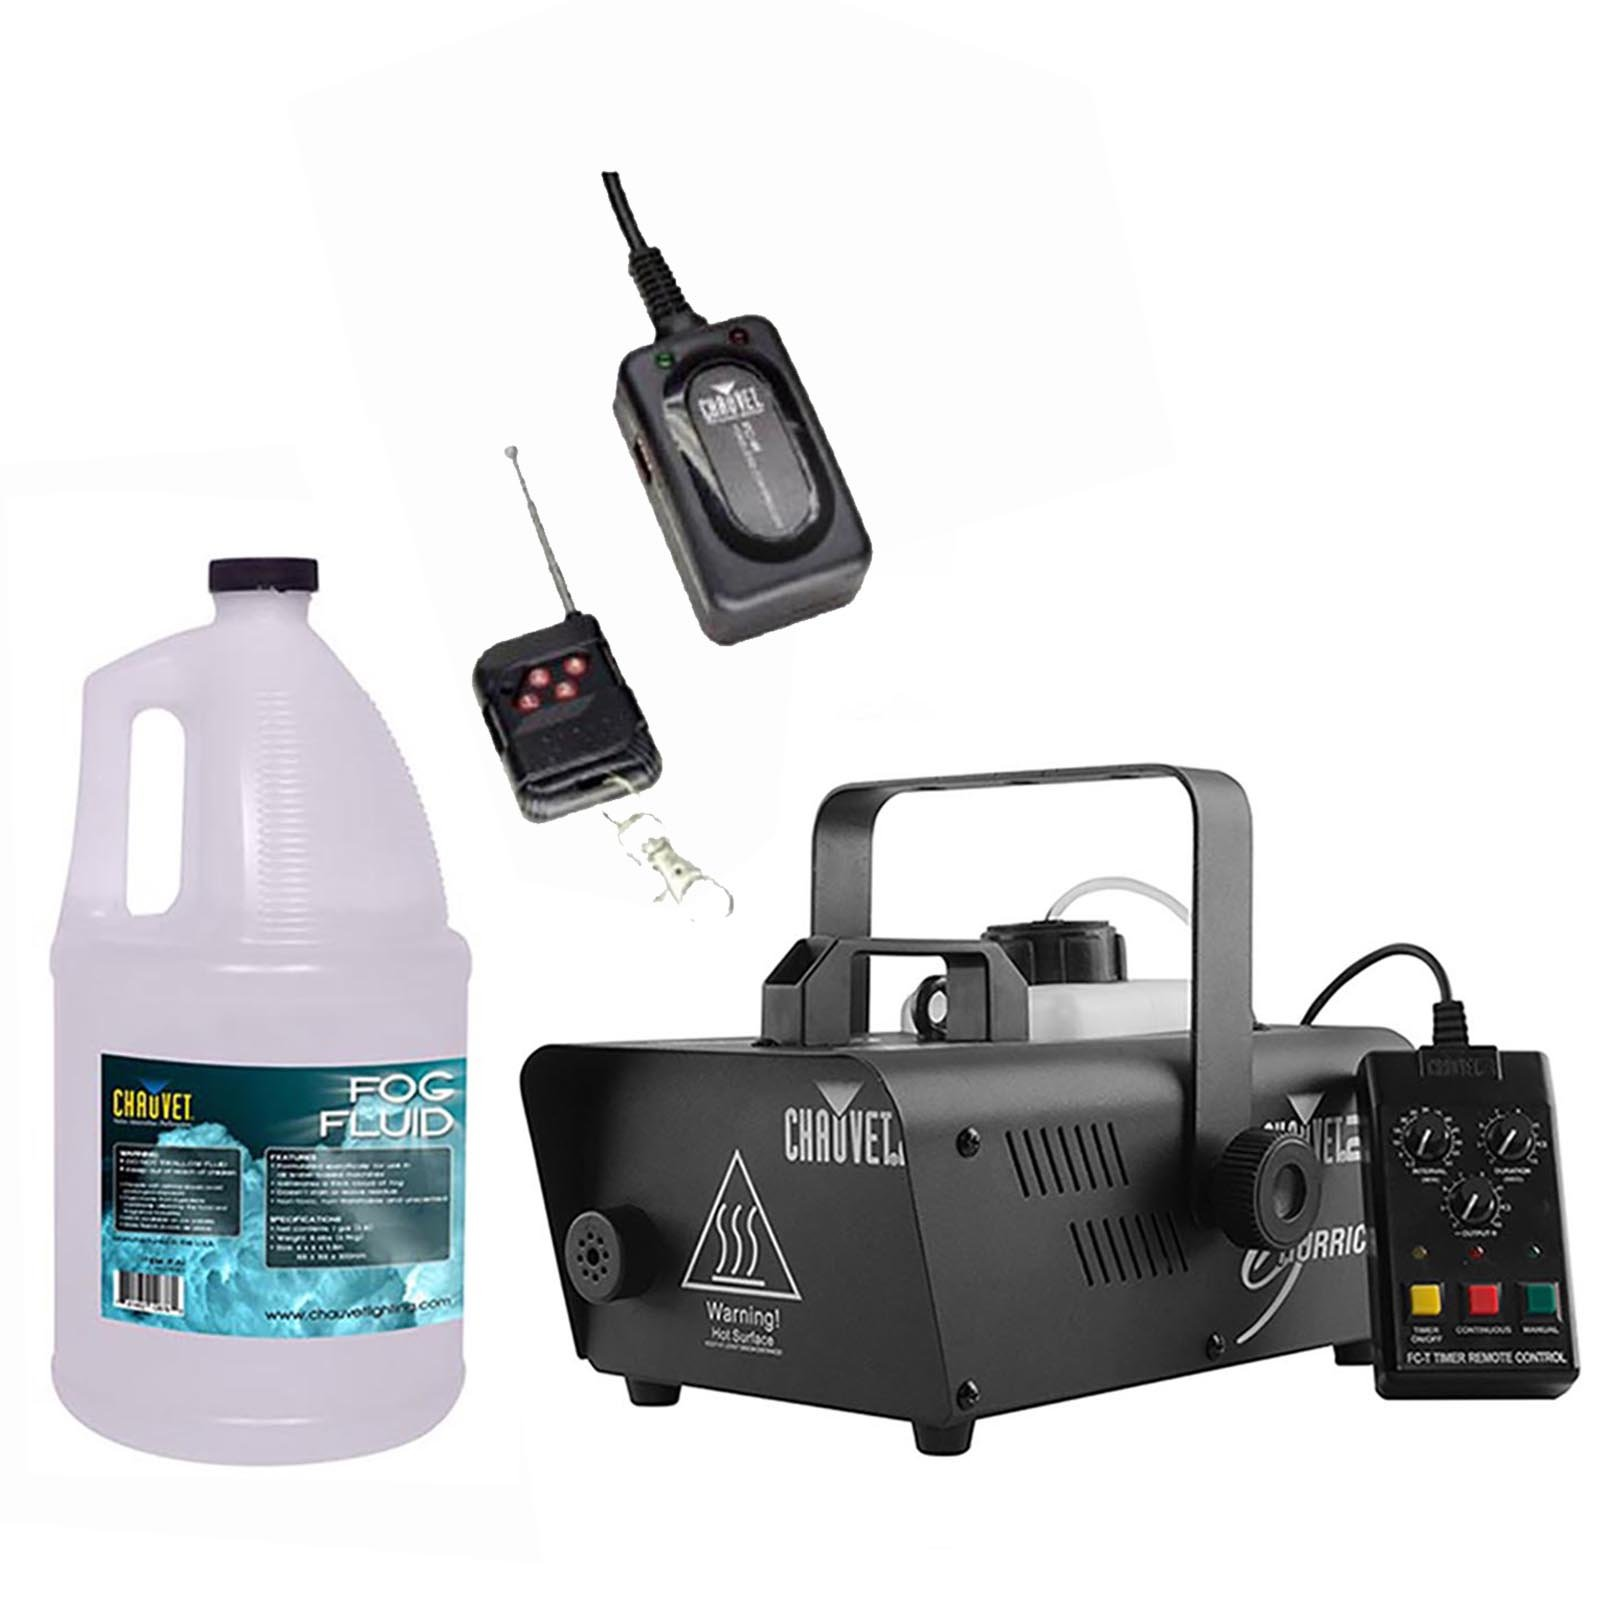 CHAUVET Hurricane H1200 Fog/Smoke Machine + FC-W Wireless Remote + FJU Fog Fluid